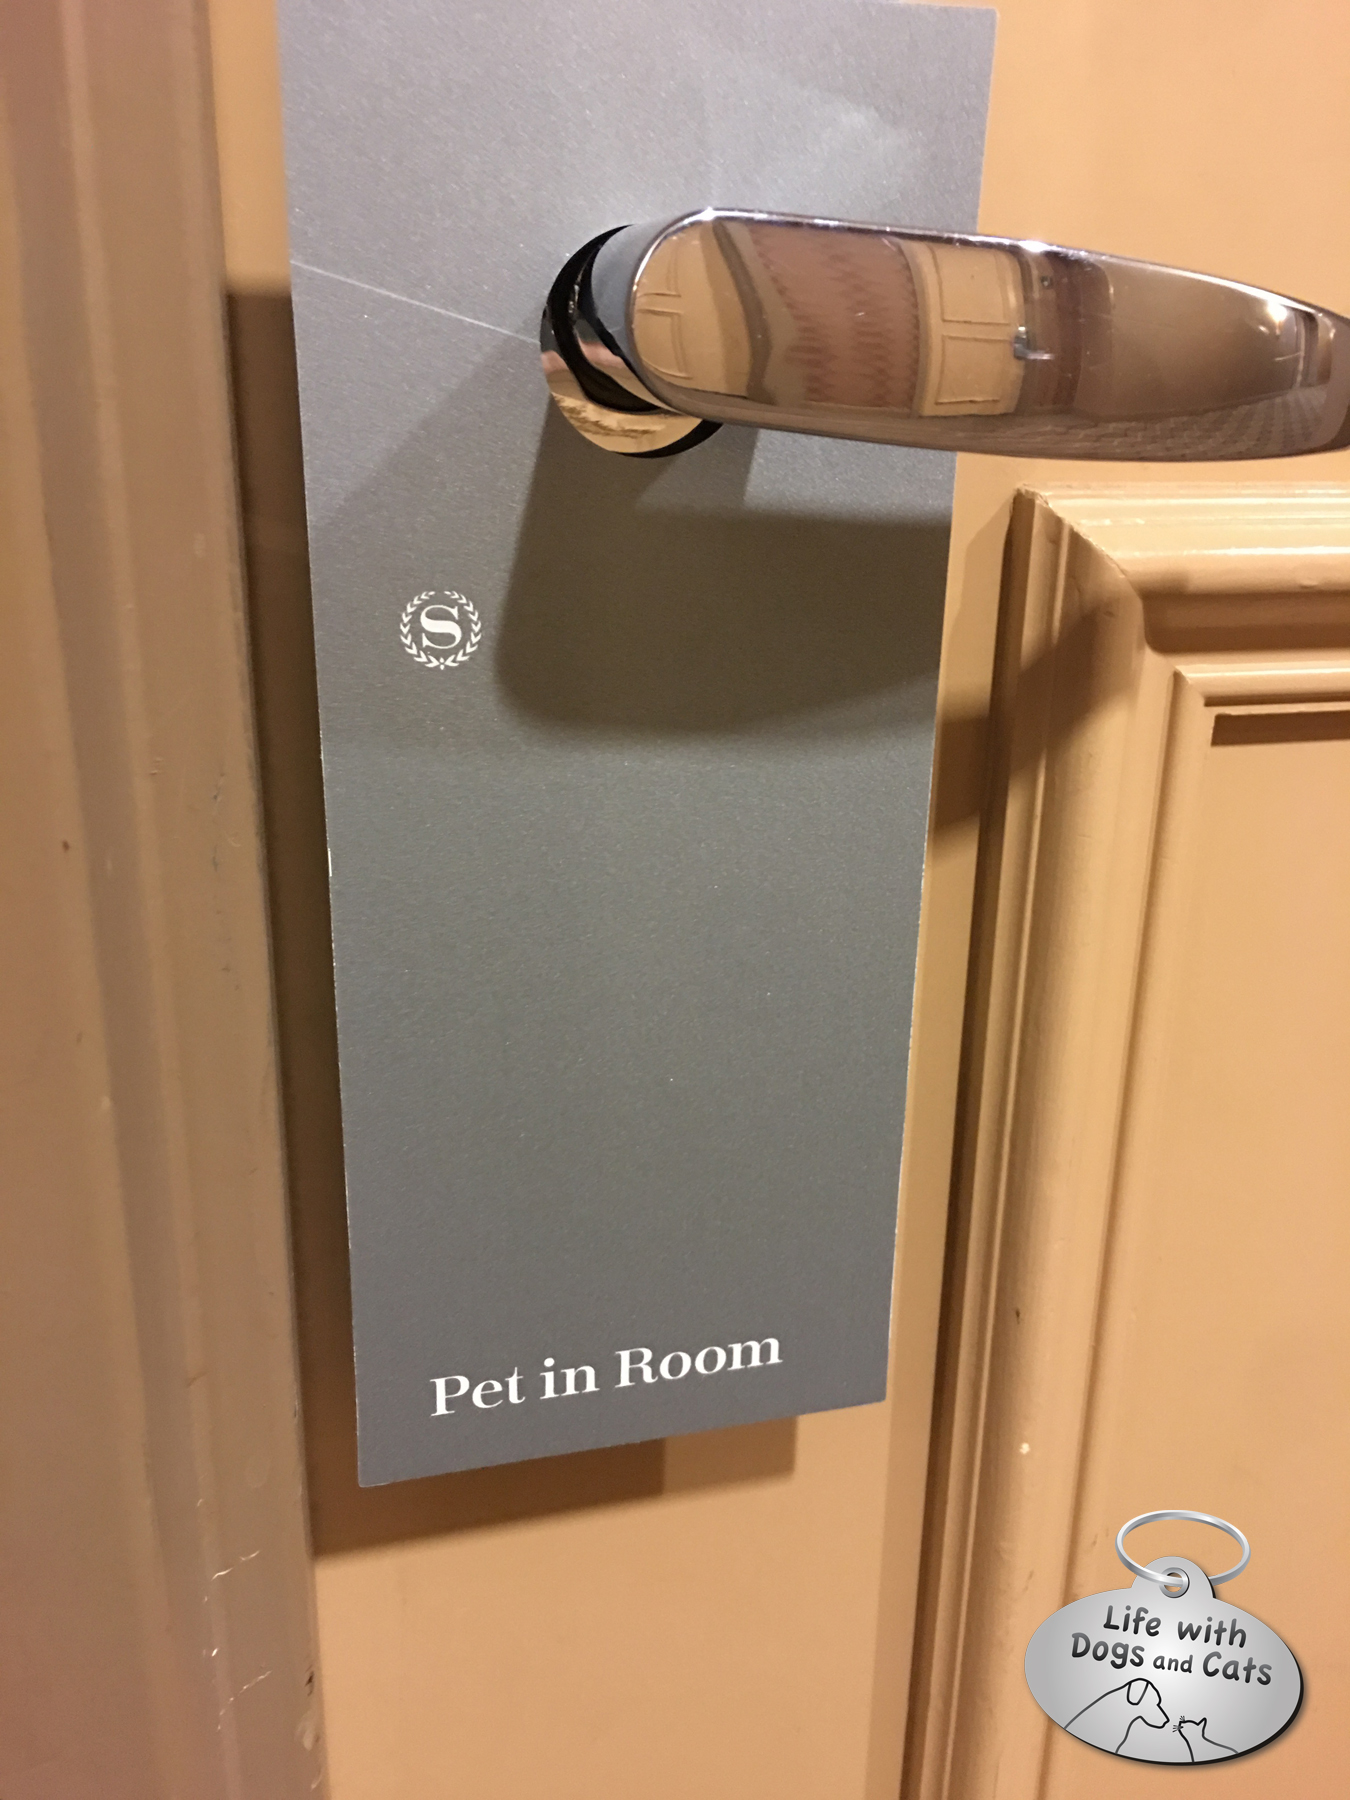 Pets in room doorhanger BlowPaws